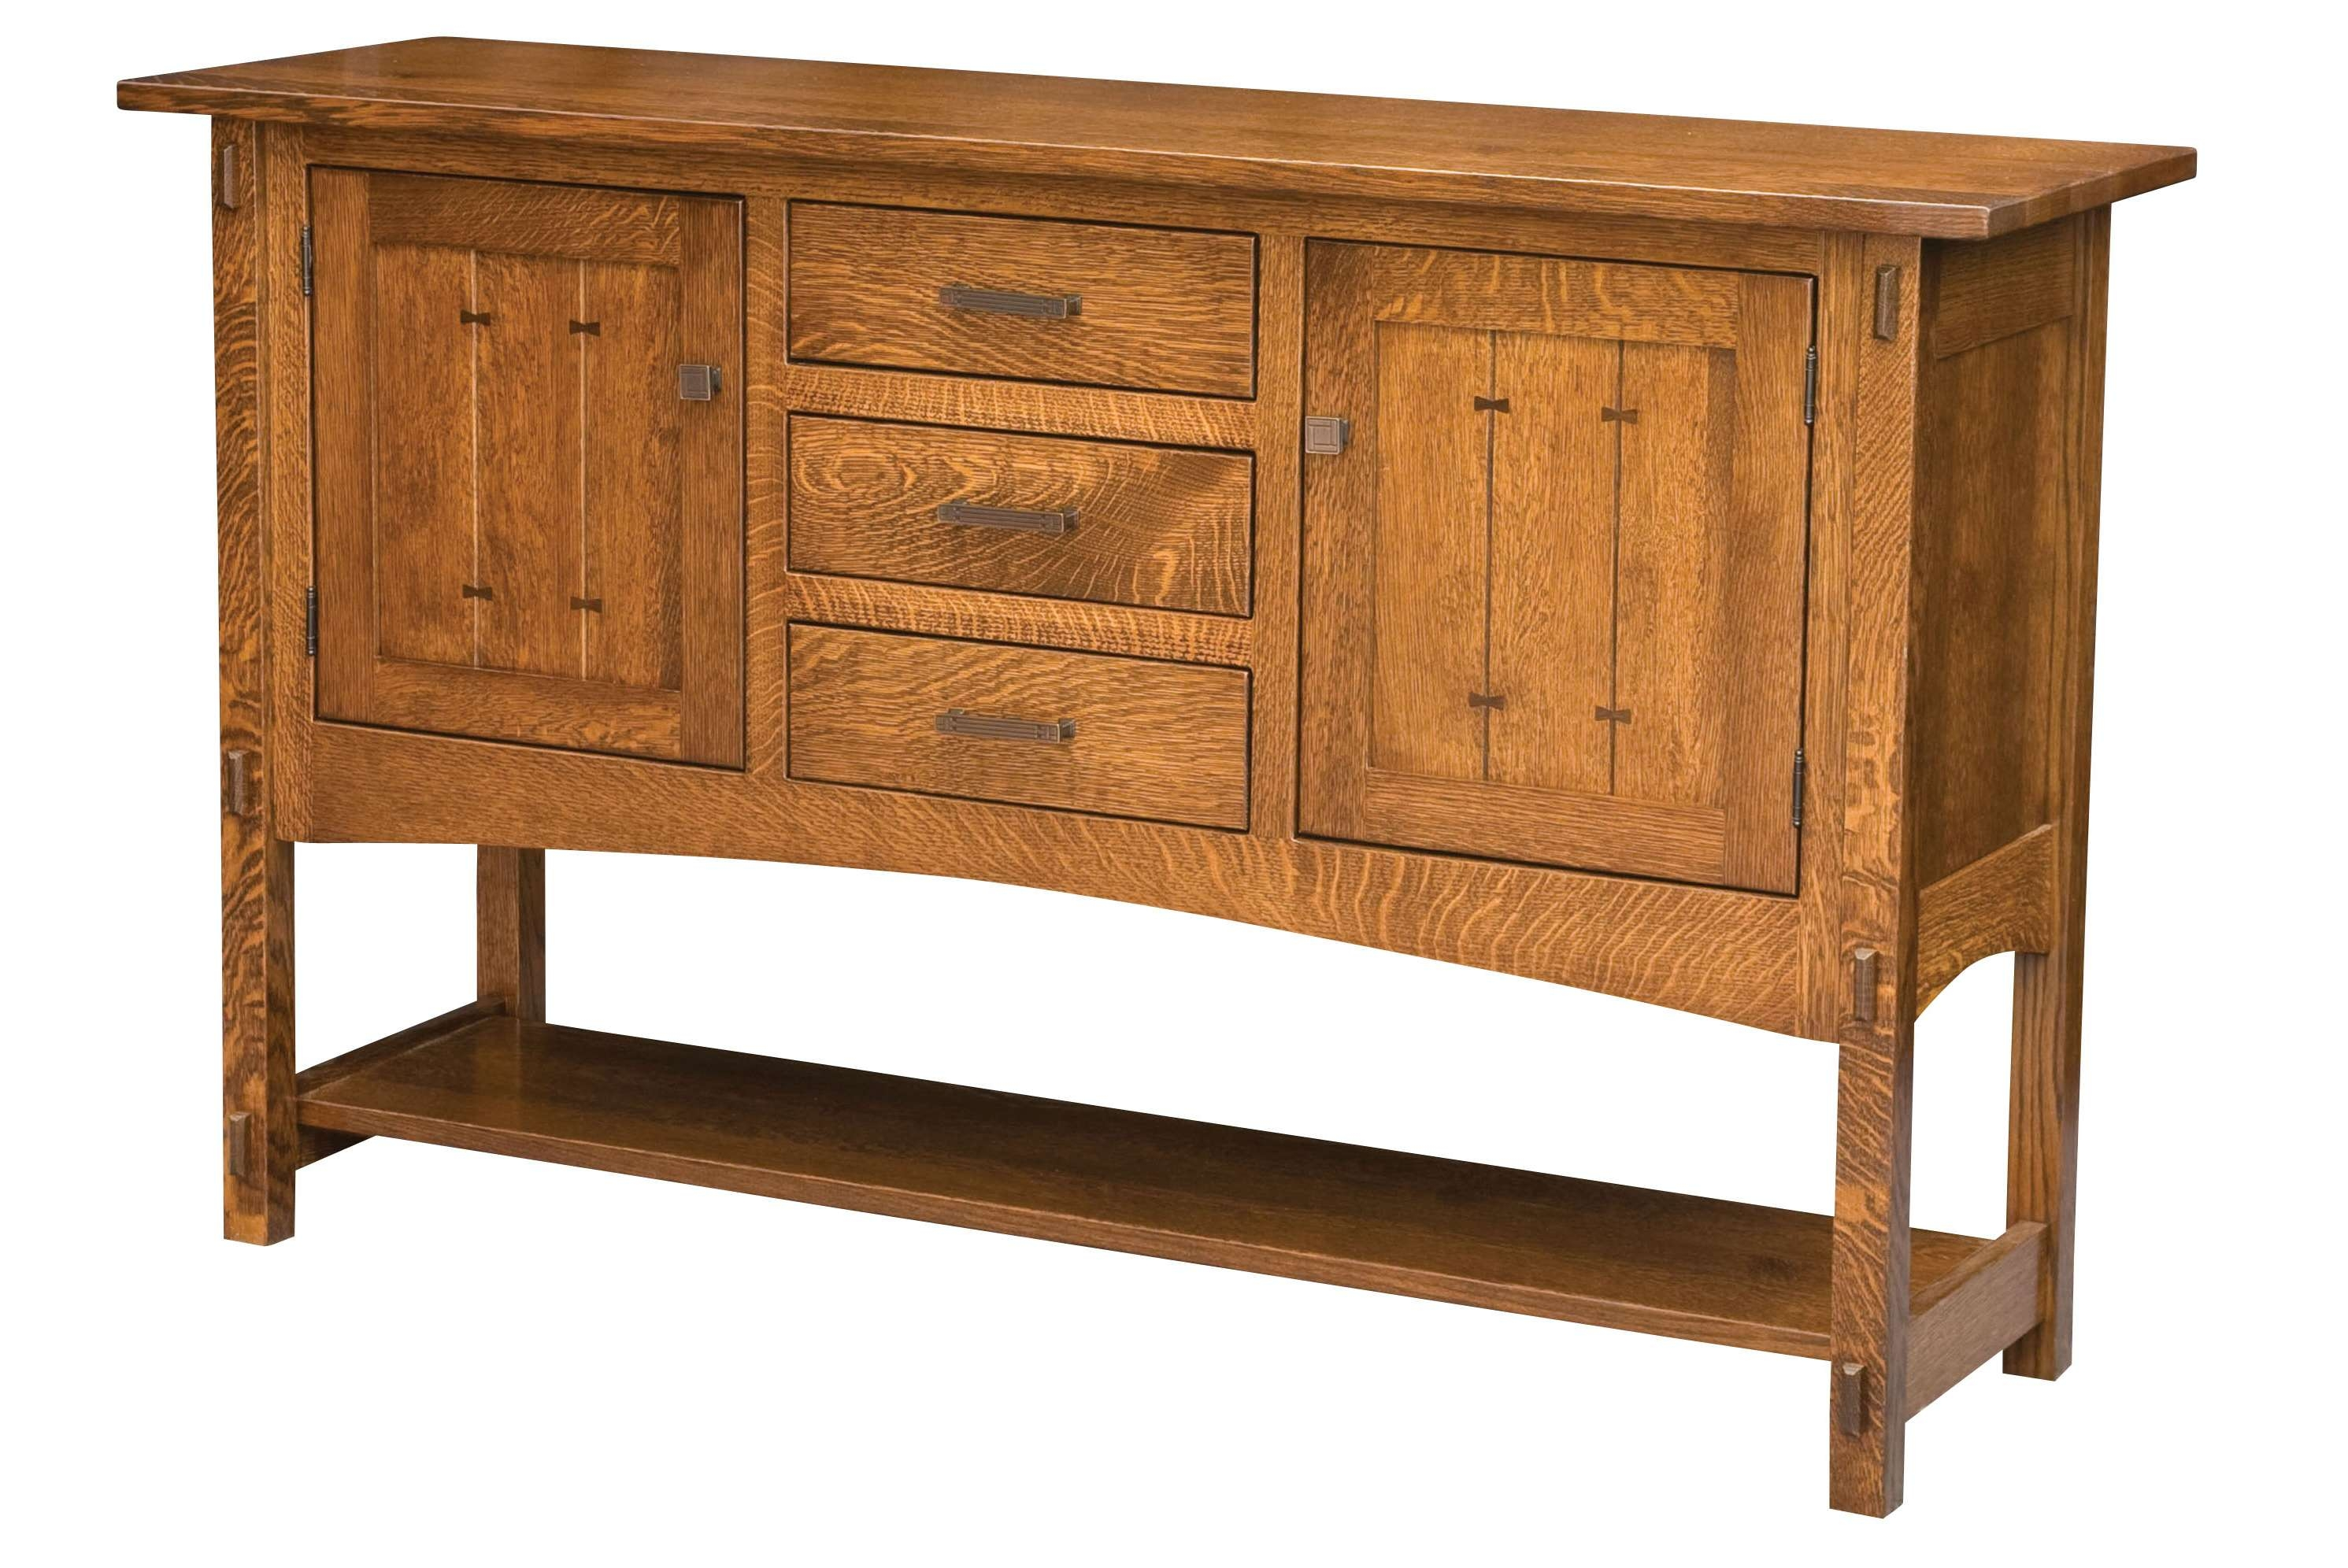 This Sideboard Builtthe Amish For The Mission Works Features Intended For Mission Style Sideboards (View 4 of 20)